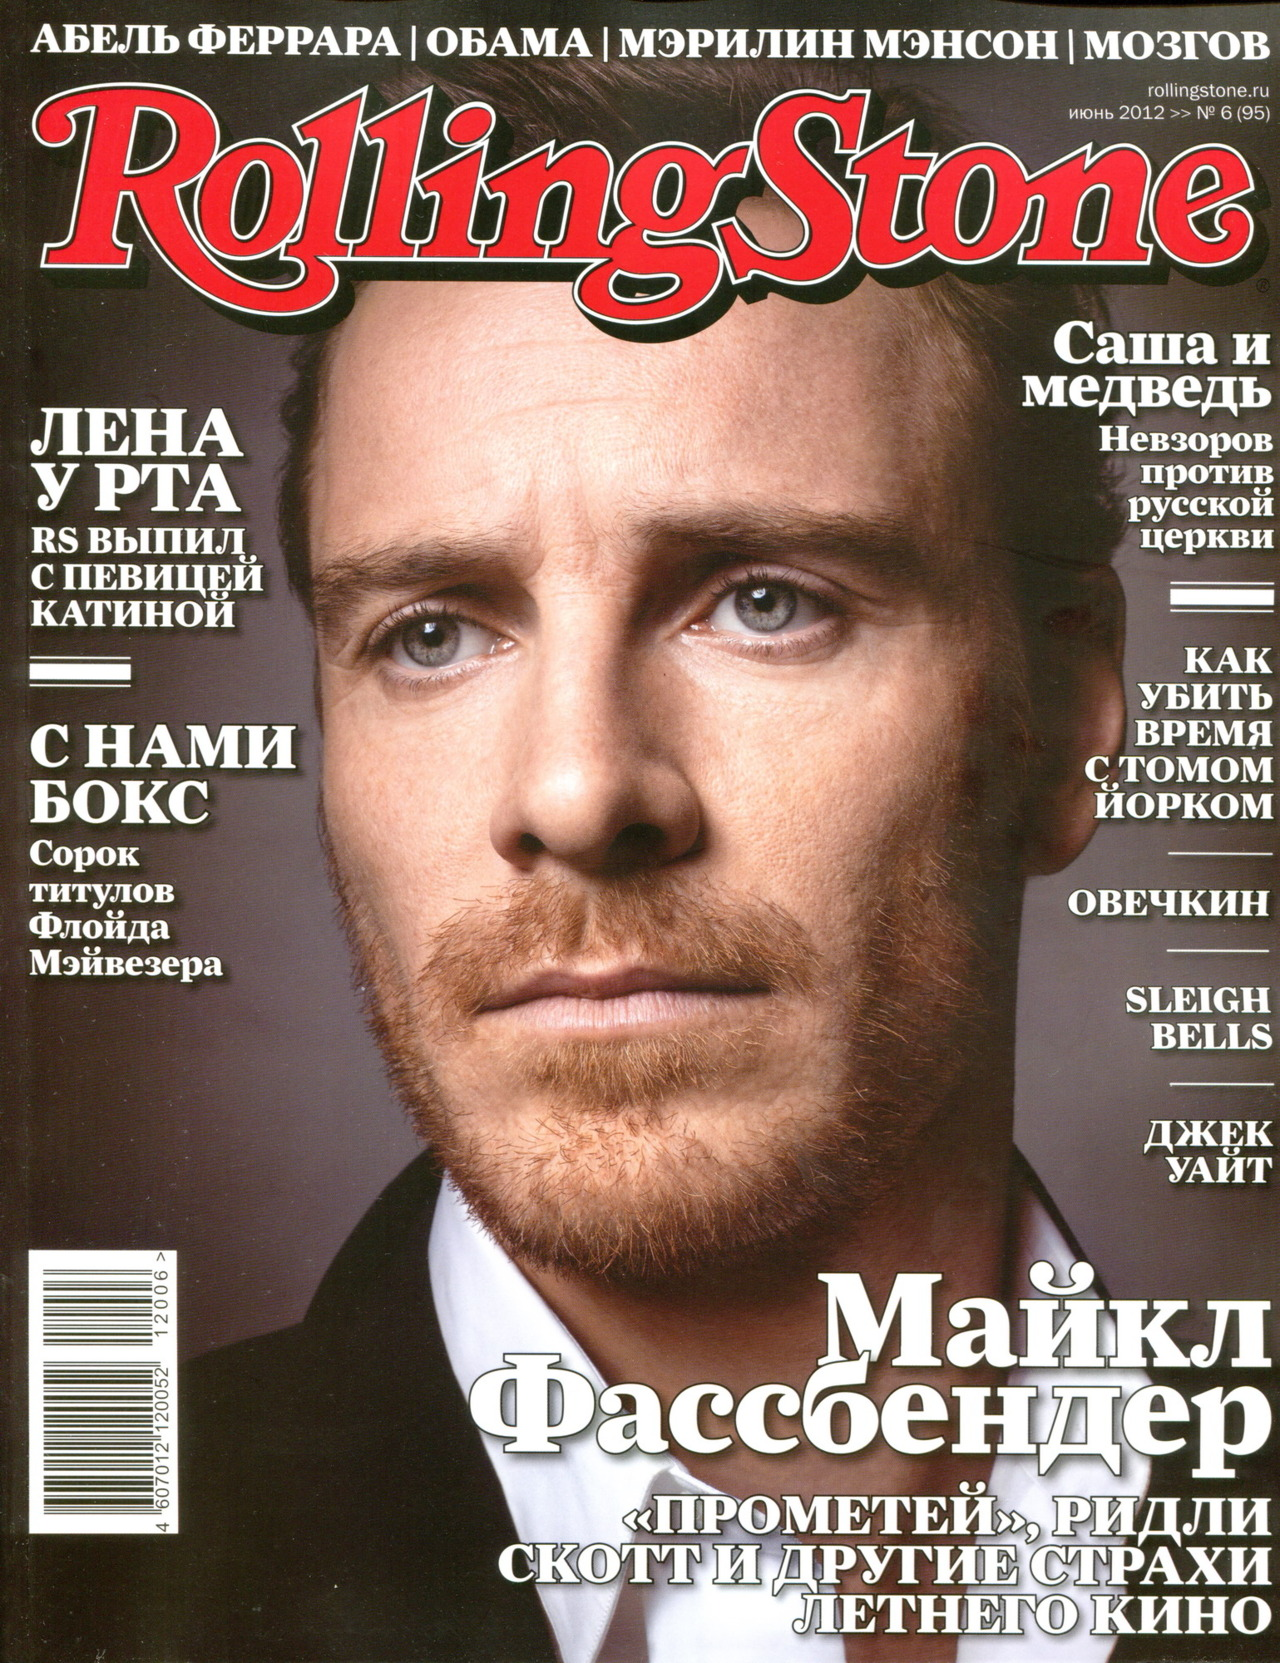 Rolling Stone magazine, US double issue 776/777, December 25-January 8, 1998